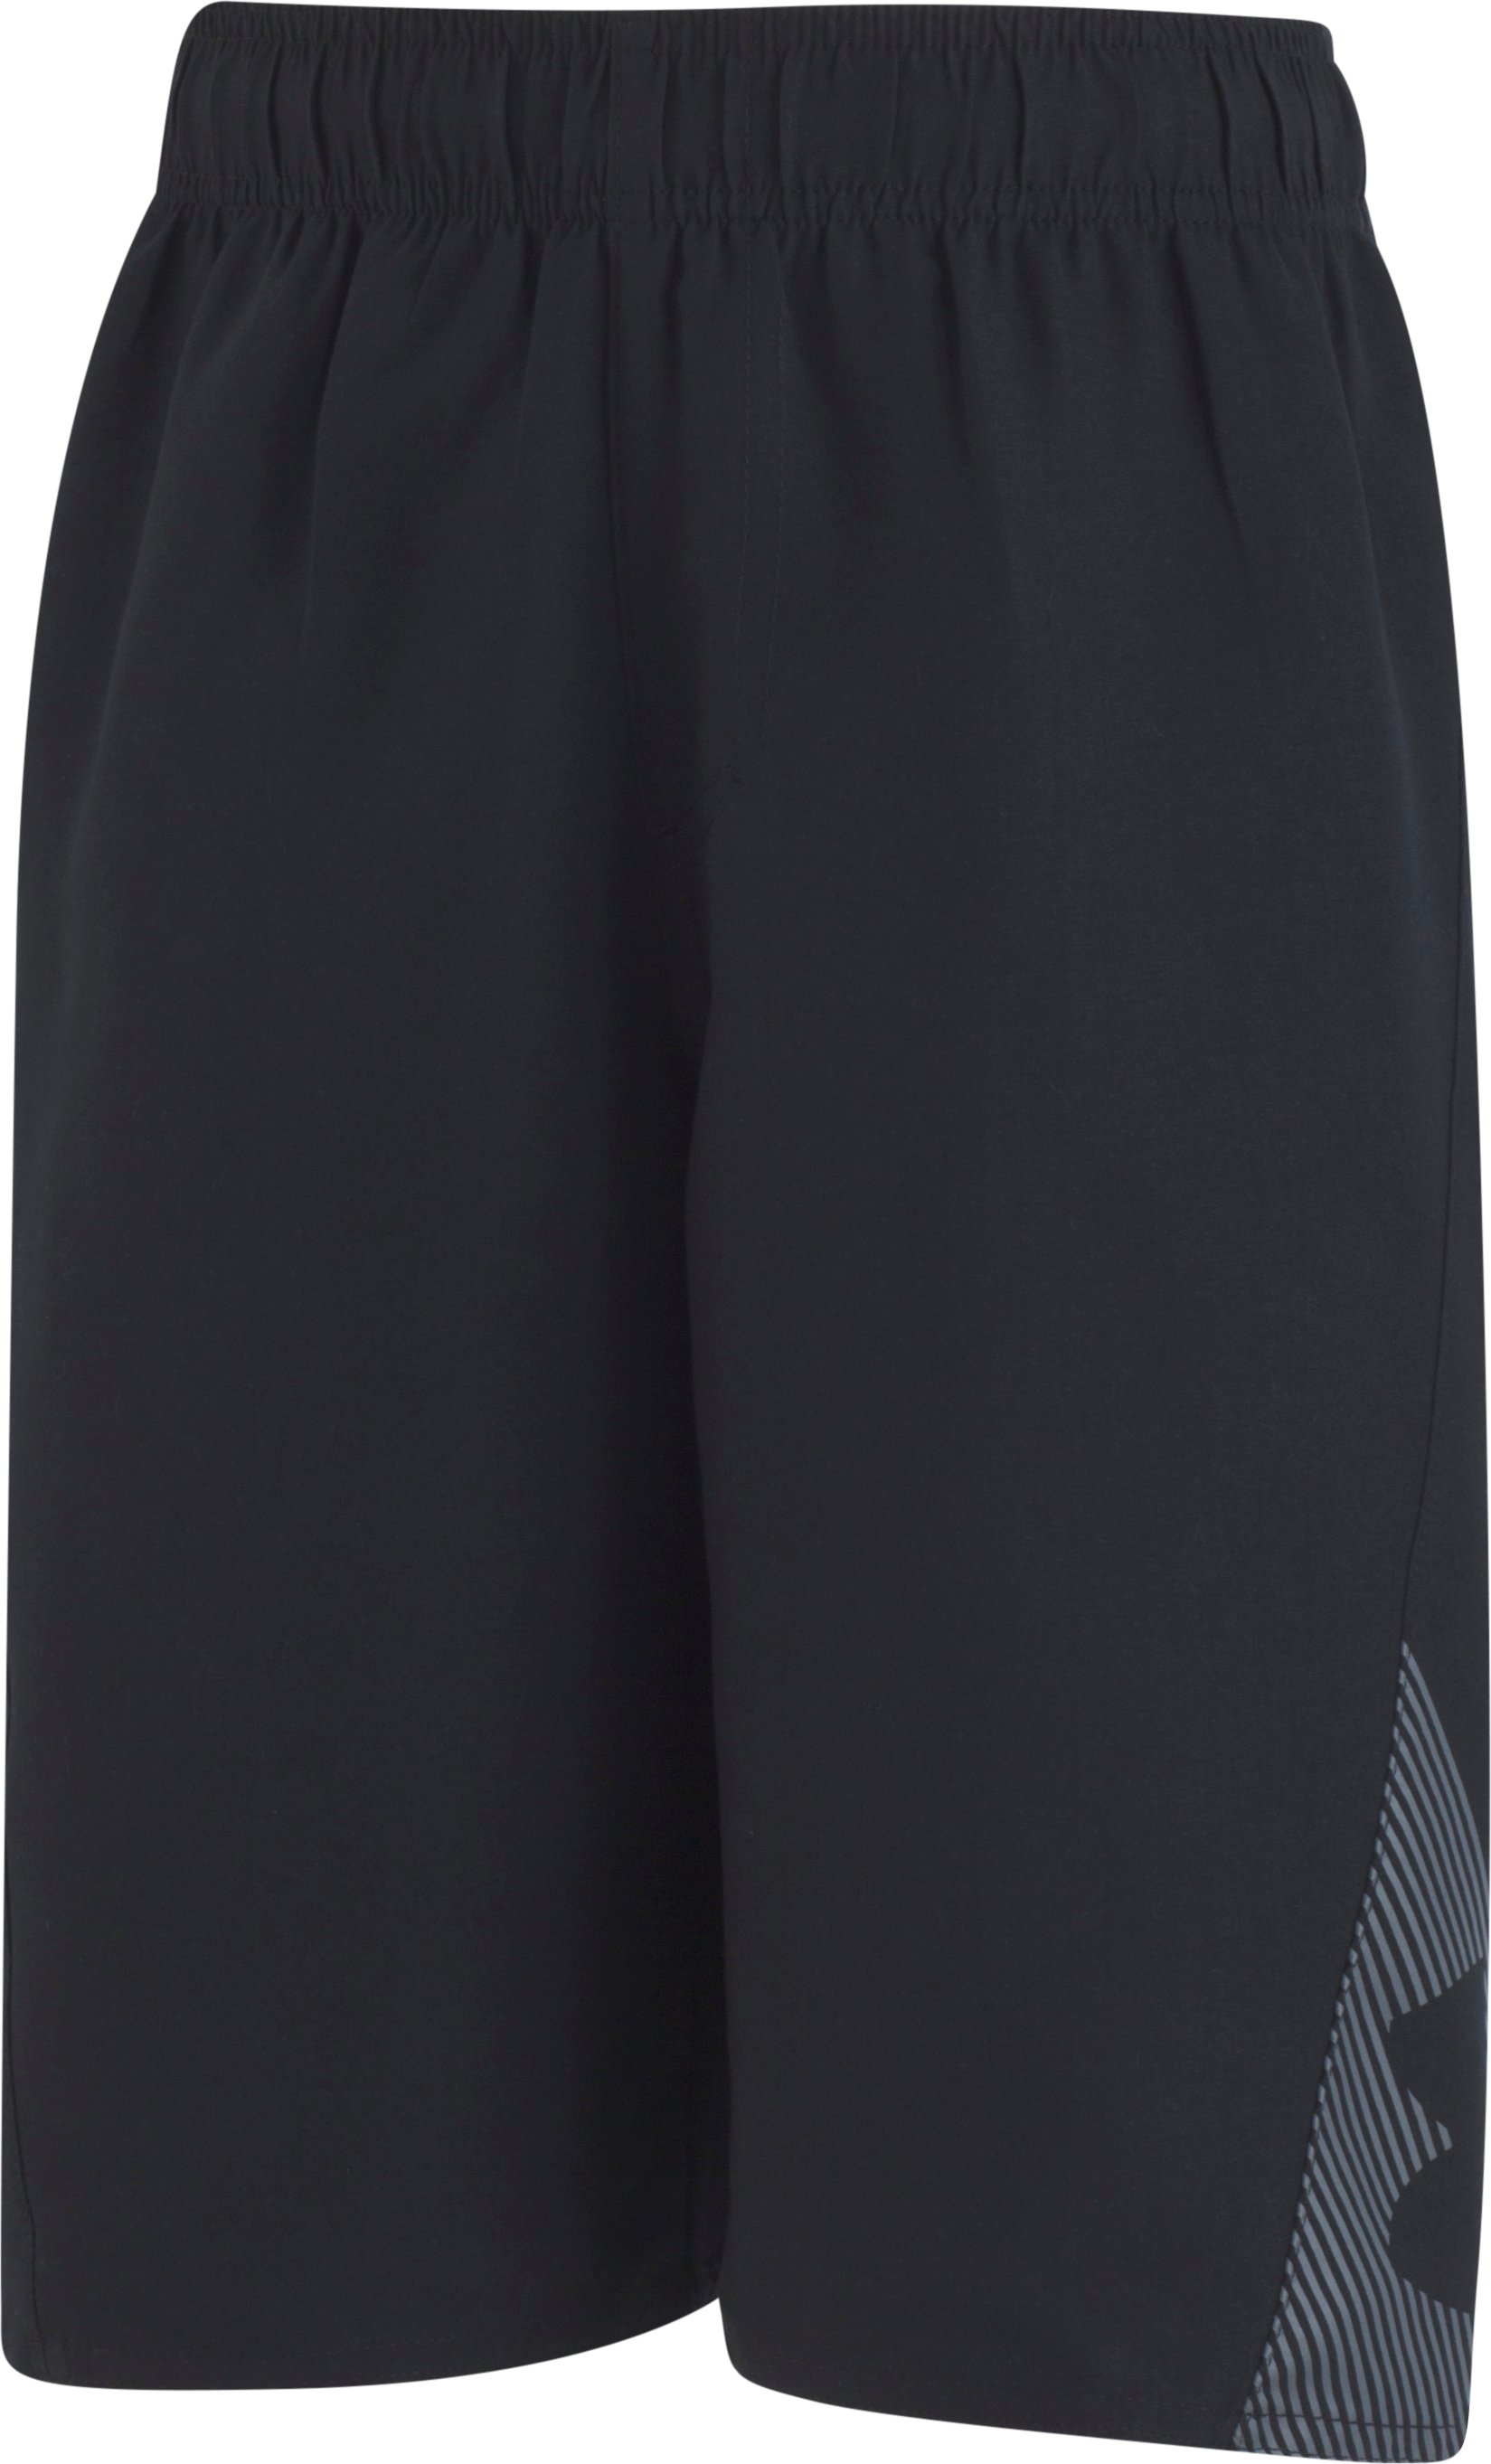 Boys' UA Slash Volley, Black , zoomed